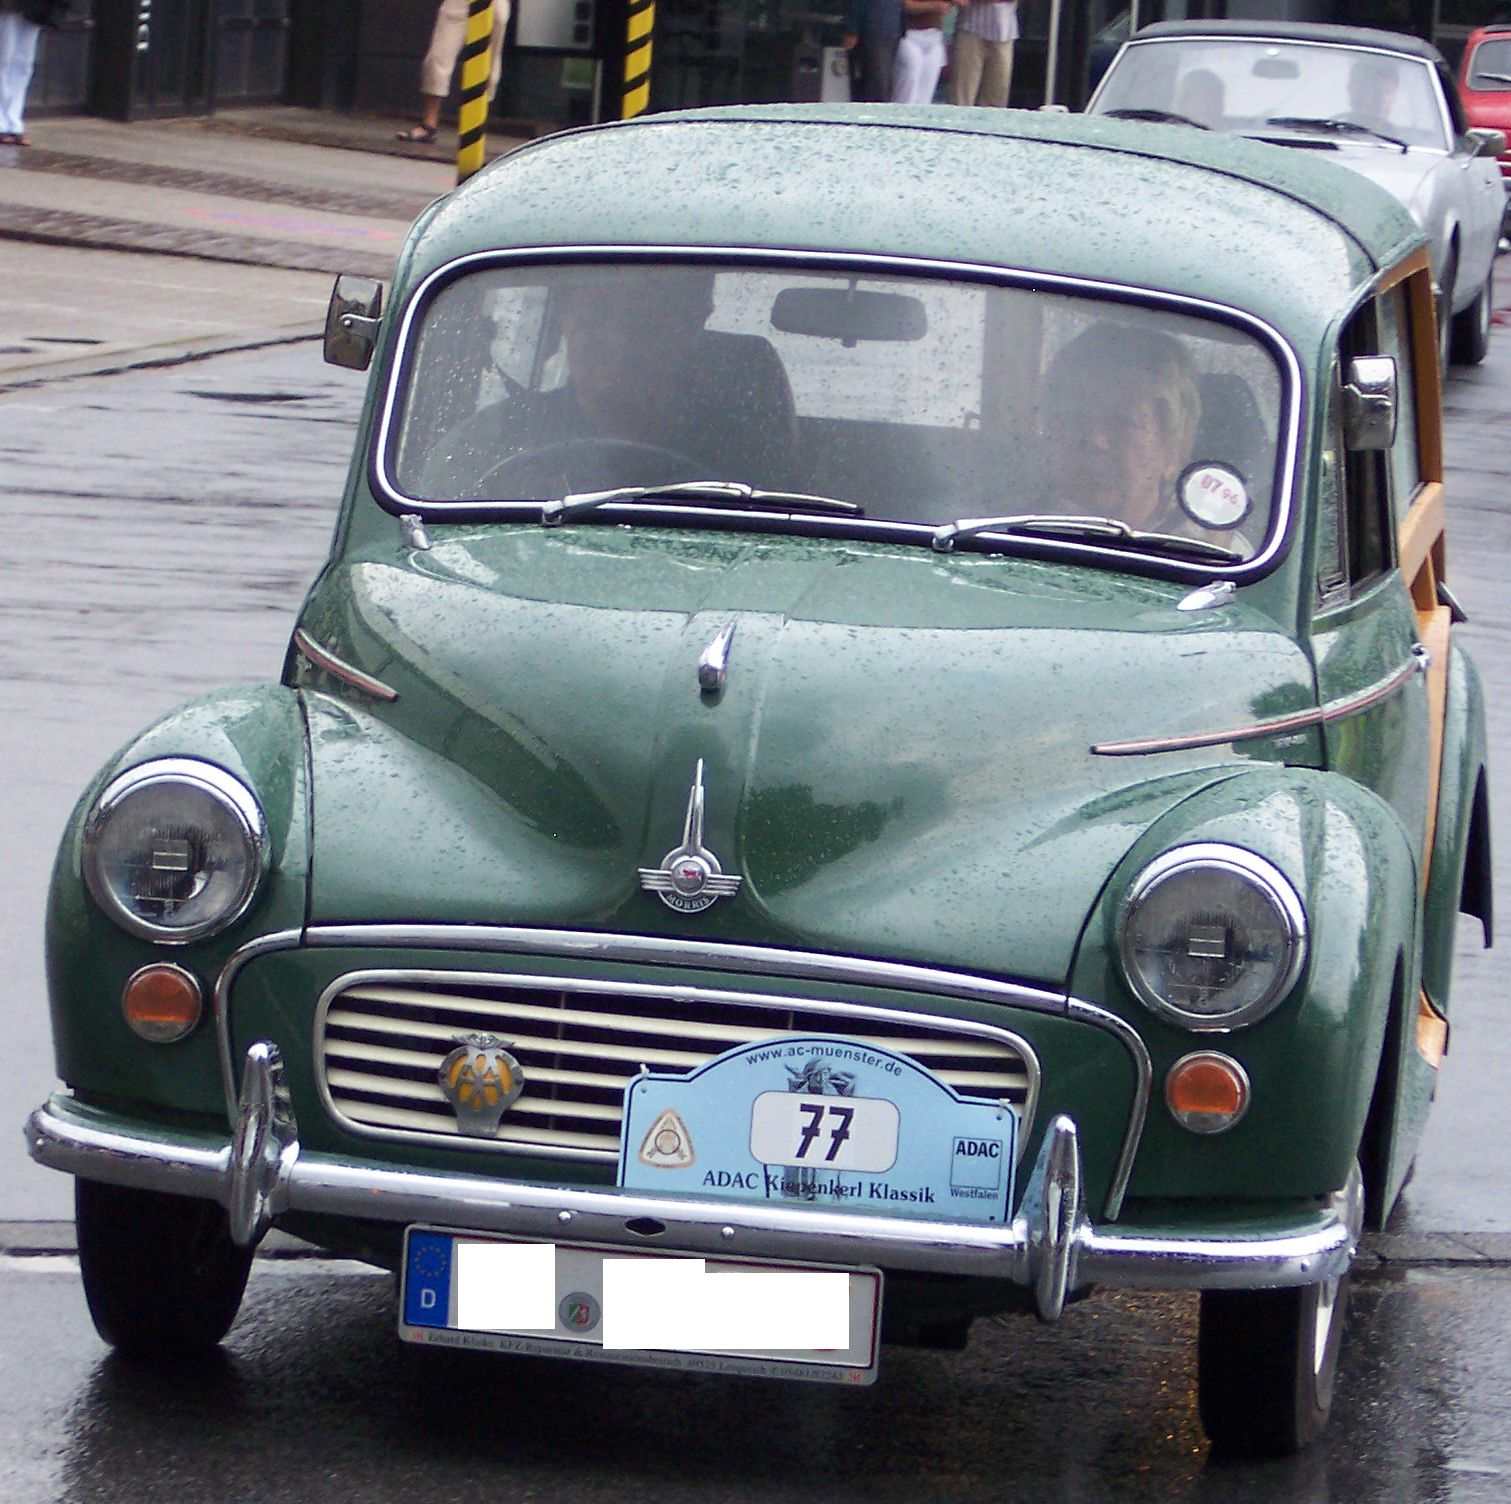 File:Morris Minor 1000 green woody v.jpg - Wikimedia Commons